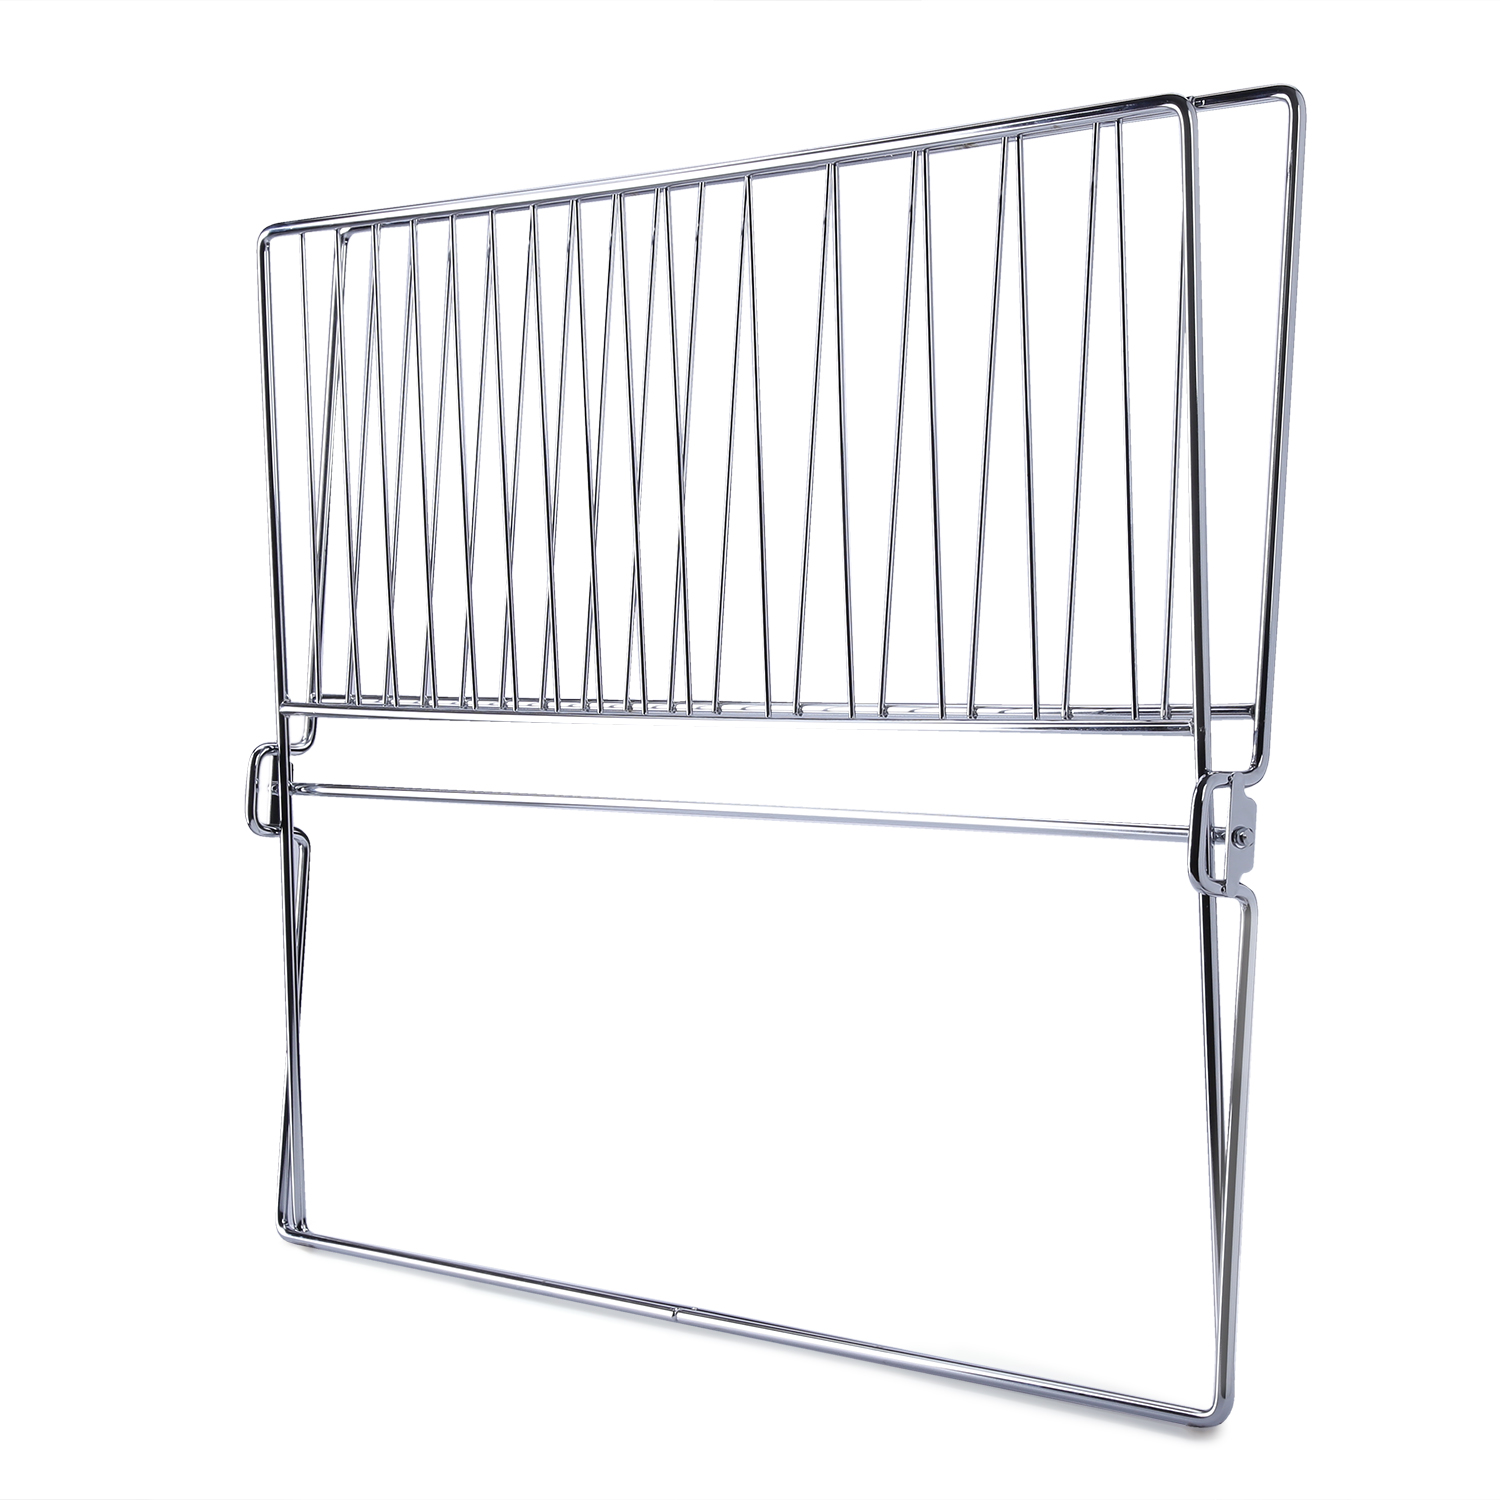 Hettich Stainless Steel Cargo Portable Dish Drainer with PVC Tray - 5 Year Warranty Against Rusting